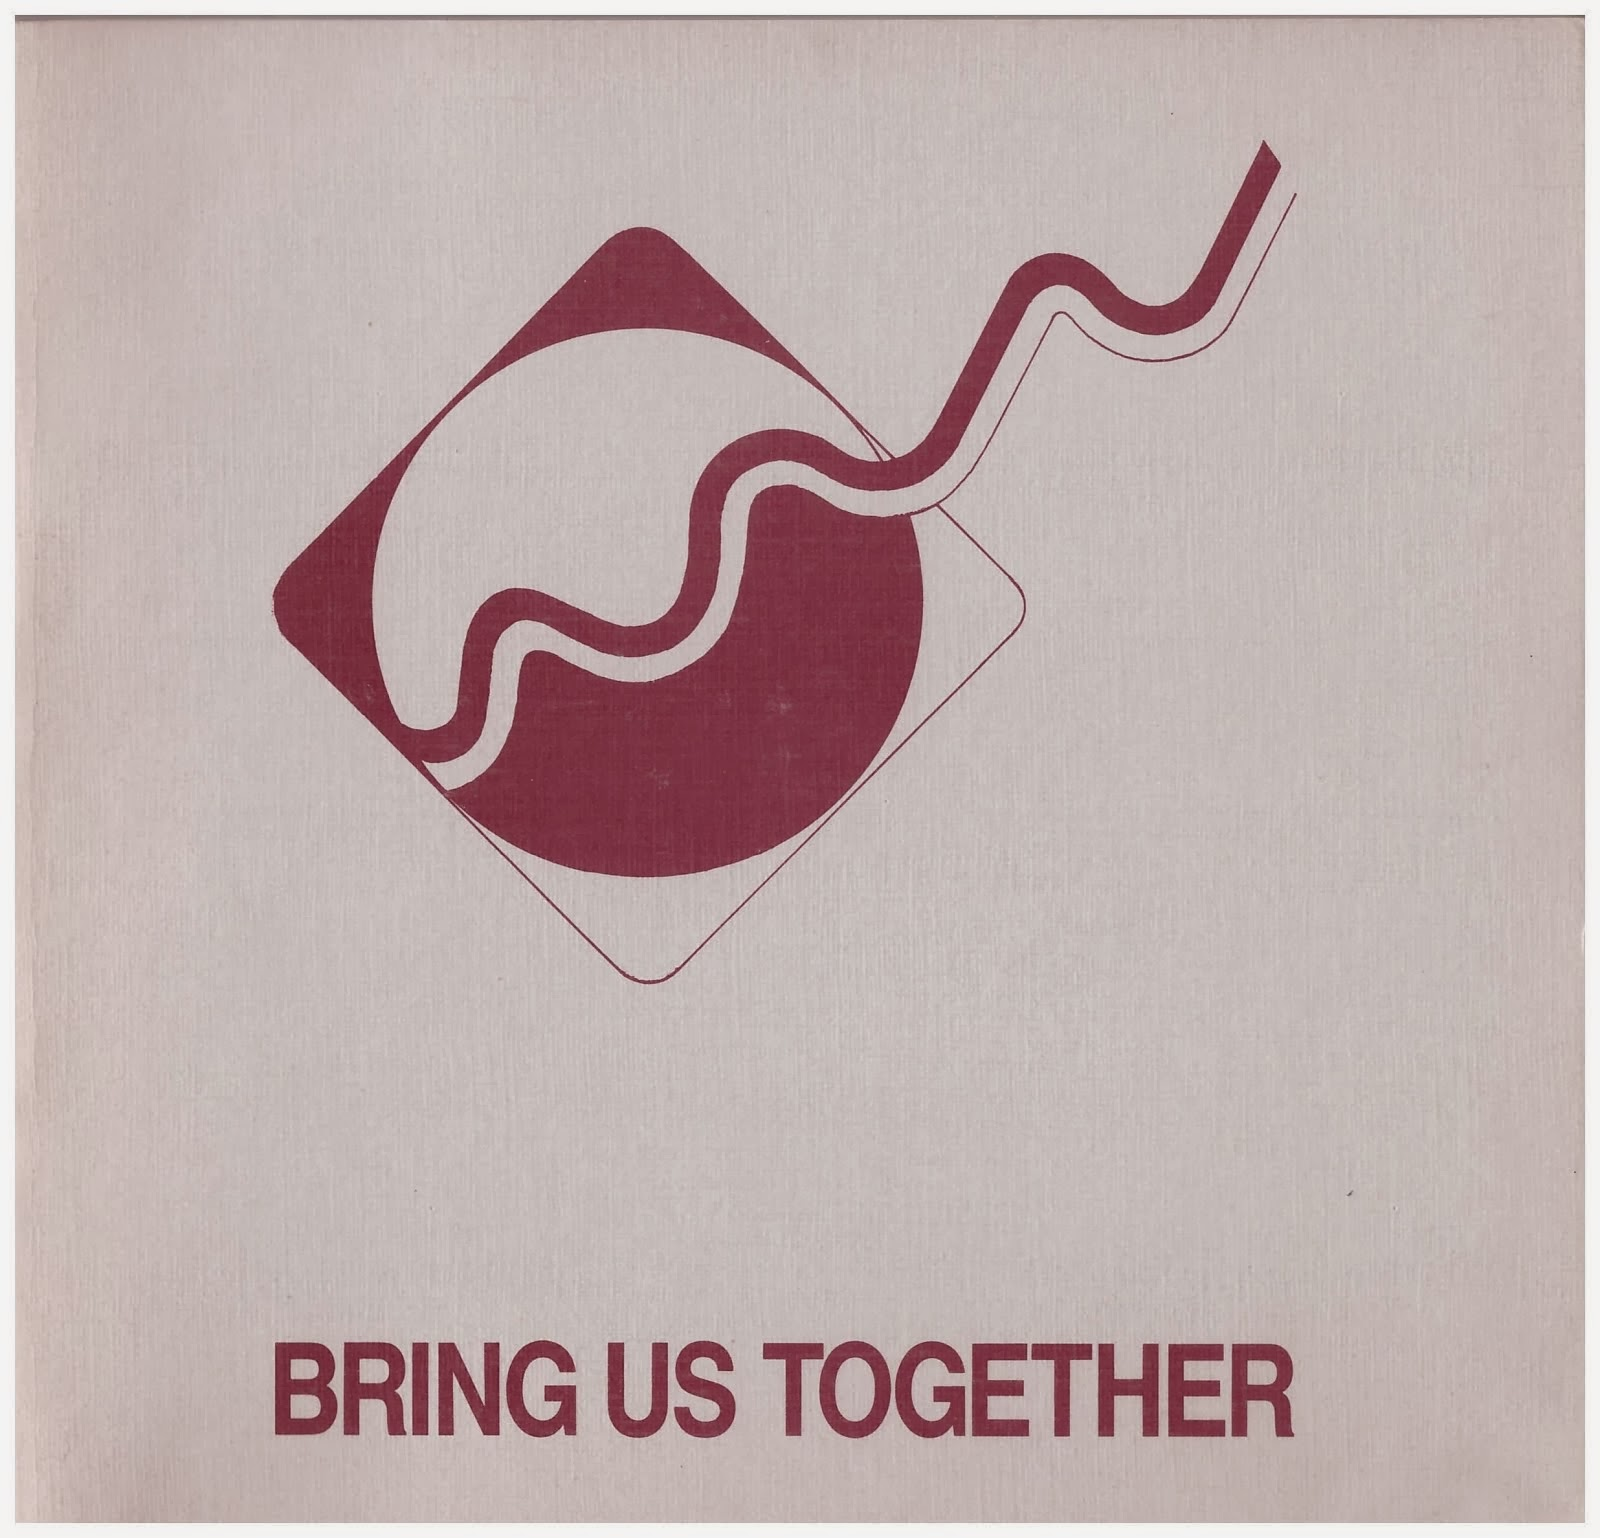 Bring us together